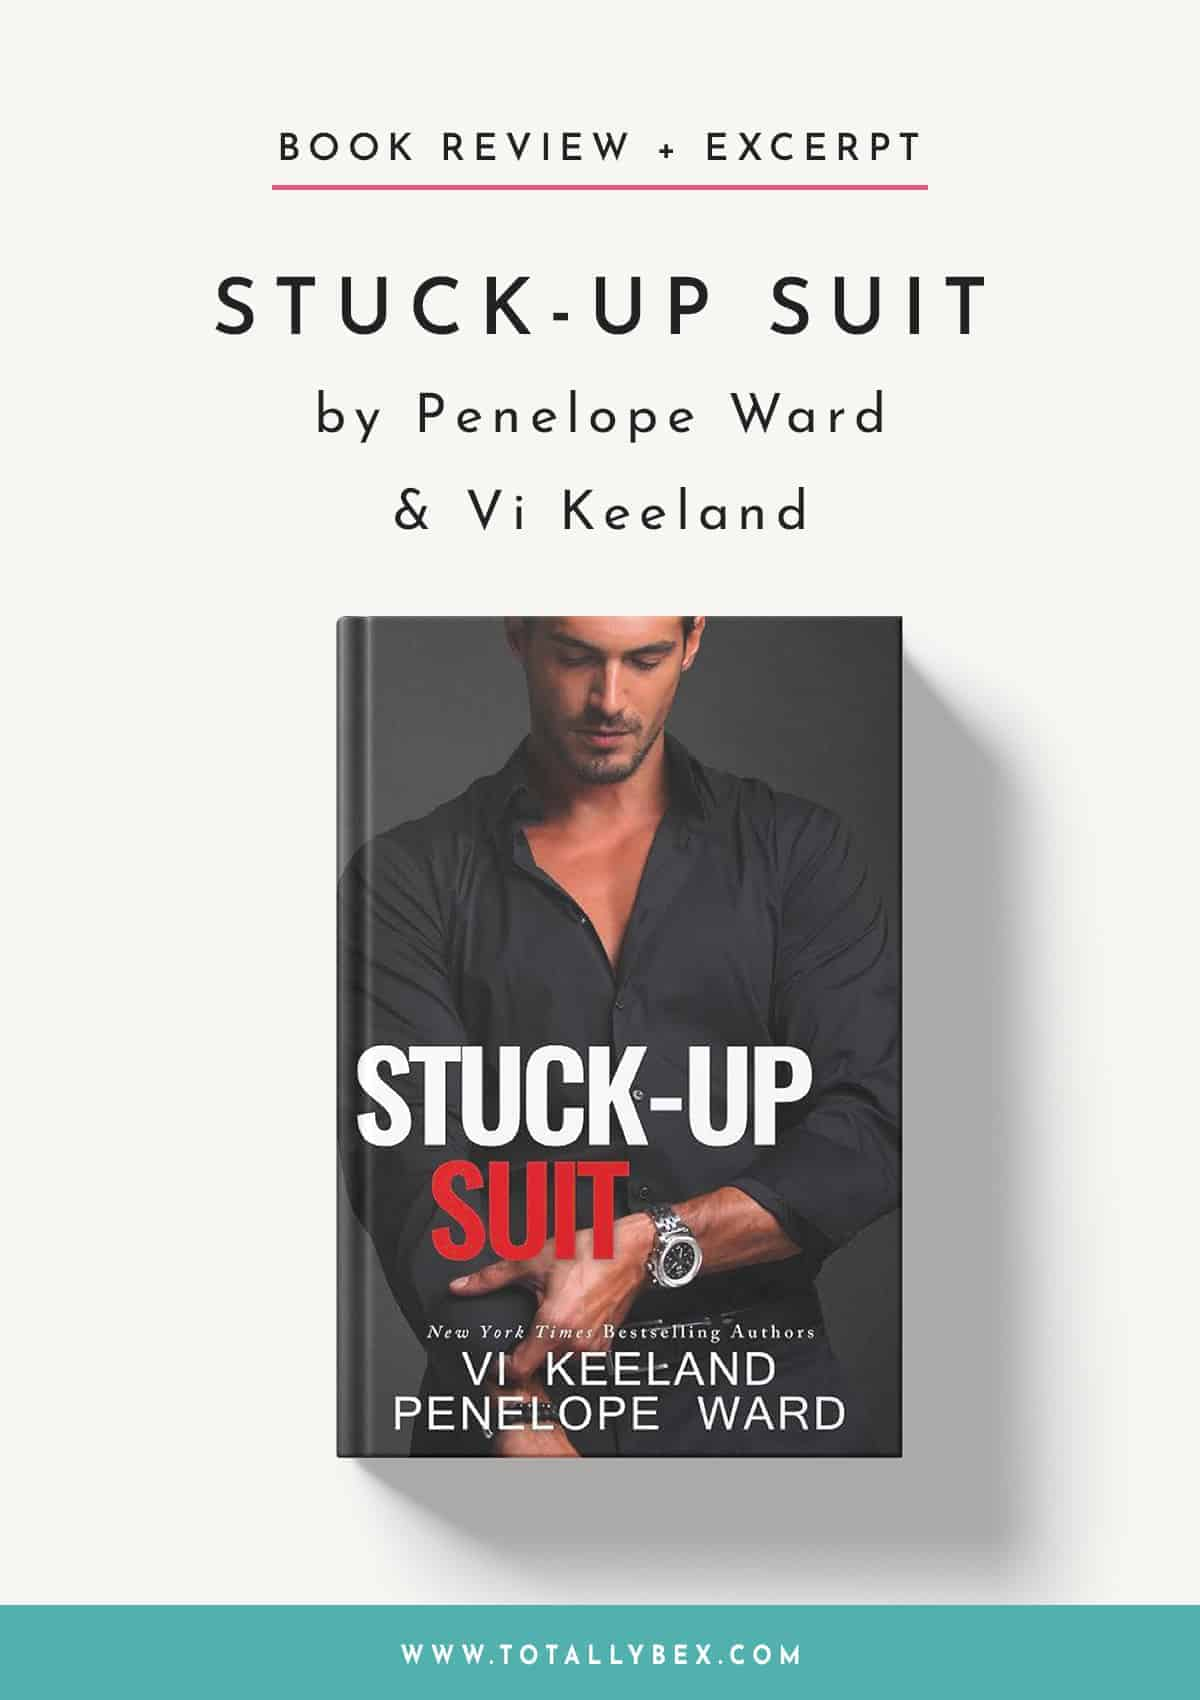 Stuck-Up Suit by Penelope Ward and Vi Keeland-BookReview+Excerpt